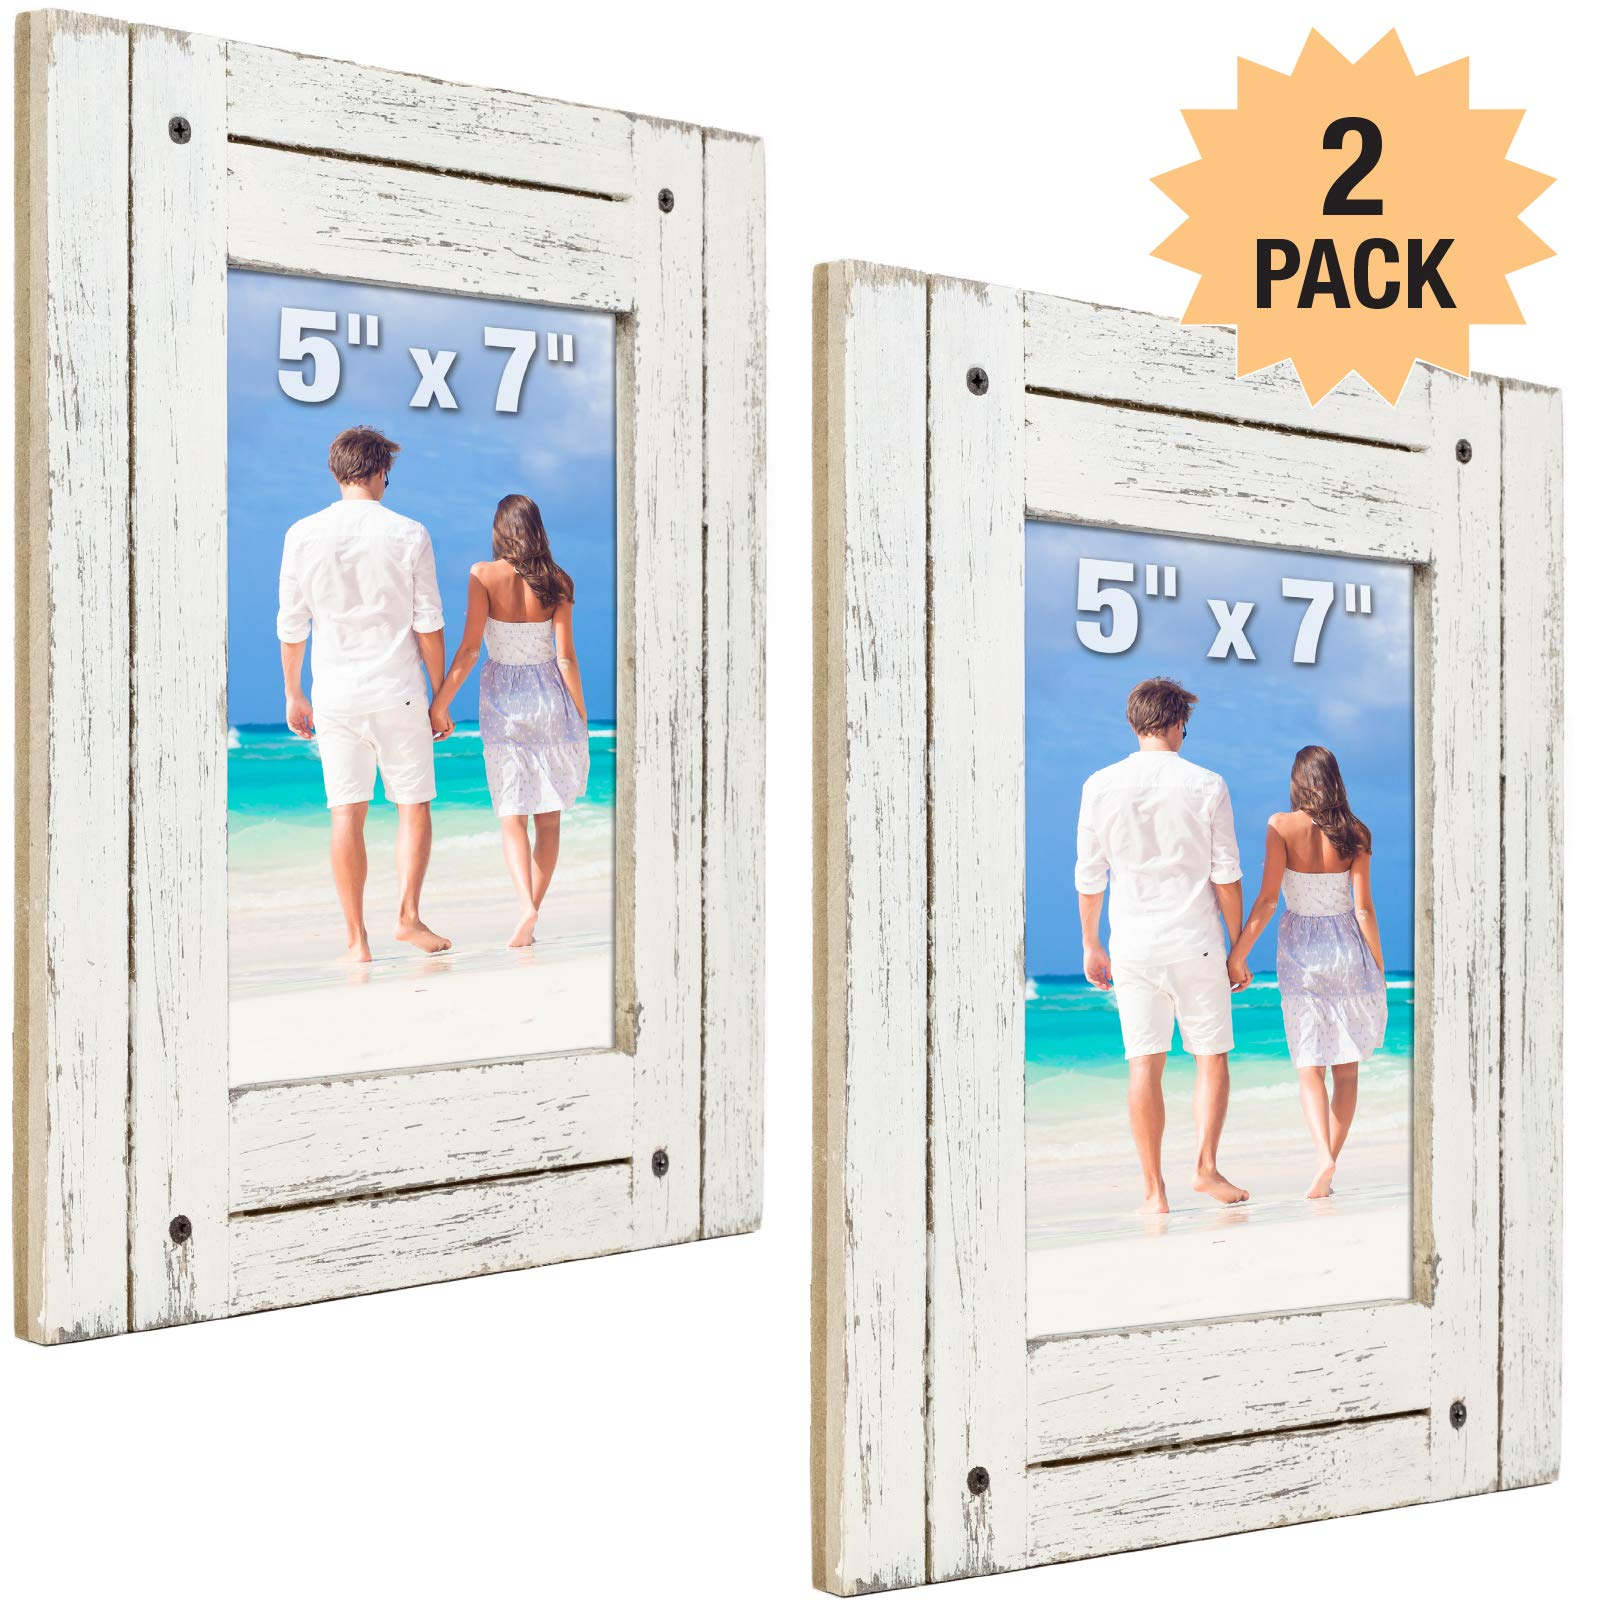 Rustic Shabby Chic White Weathered Distressed Vintage Style Wooden Picture Frame with Self-Stand Easel, Holds a 5''x7'' Photo (Pack of 2) by Excello Global Products